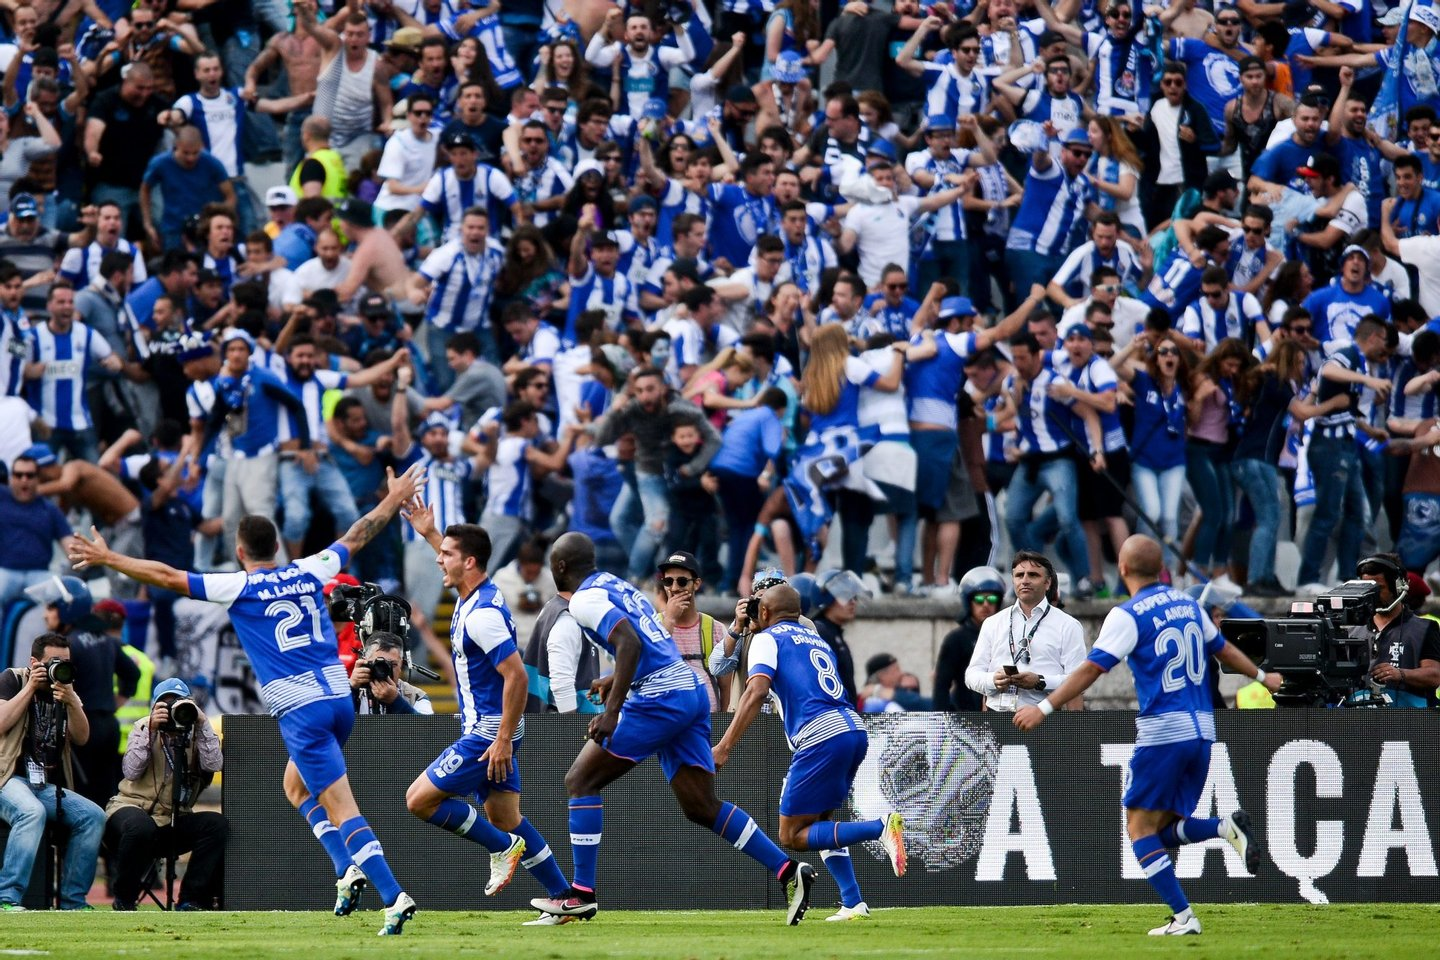 Porto's forward Andre Silva (2L) celebrates with his teammates after scored against SC Braga during the Portuguese Cup final football match FC Porto vs SC Braga at Jamor stadium in Oeiras, outskirts of Lisbon on May 22, 2016. / AFP / PATRICIA DE MELO MOREIRA (Photo credit should read PATRICIA DE MELO MOREIRA/AFP/Getty Images)